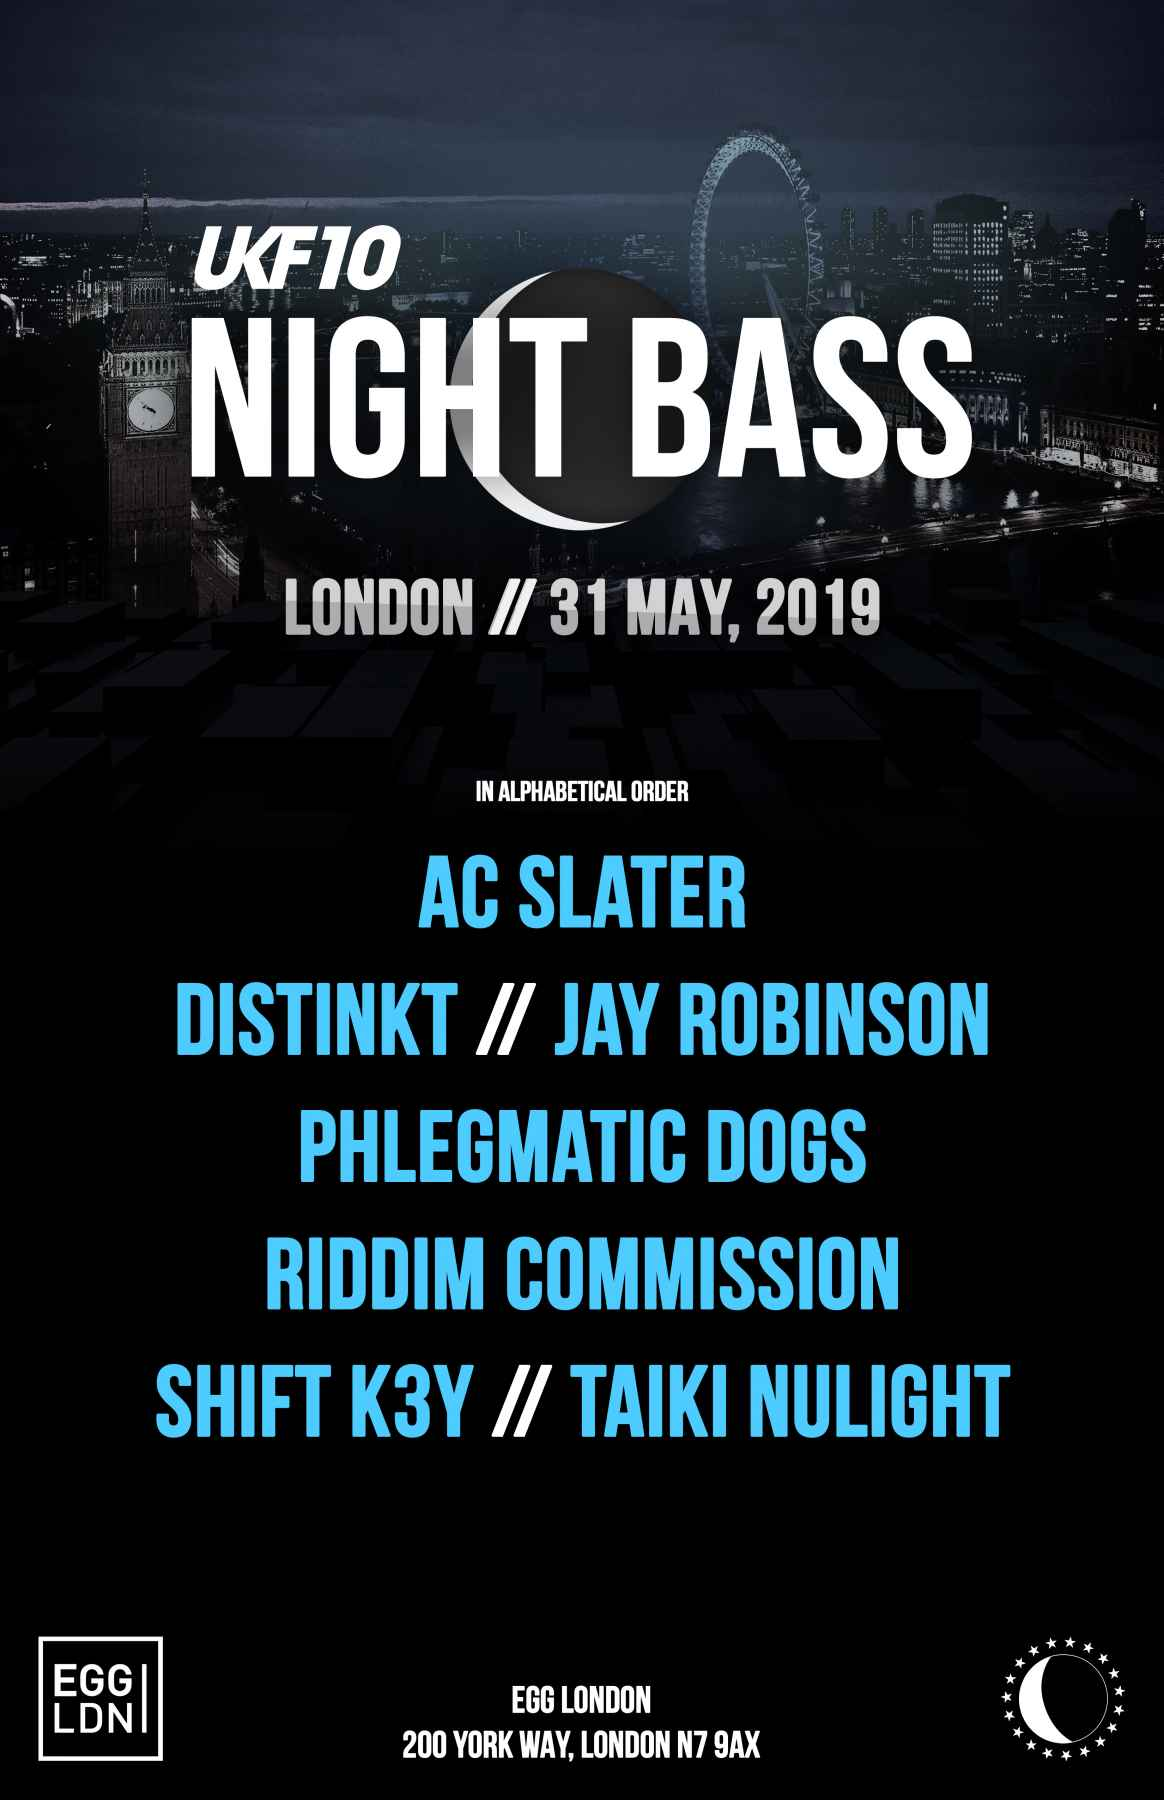 Night bass may 2019 london ukf 10 2